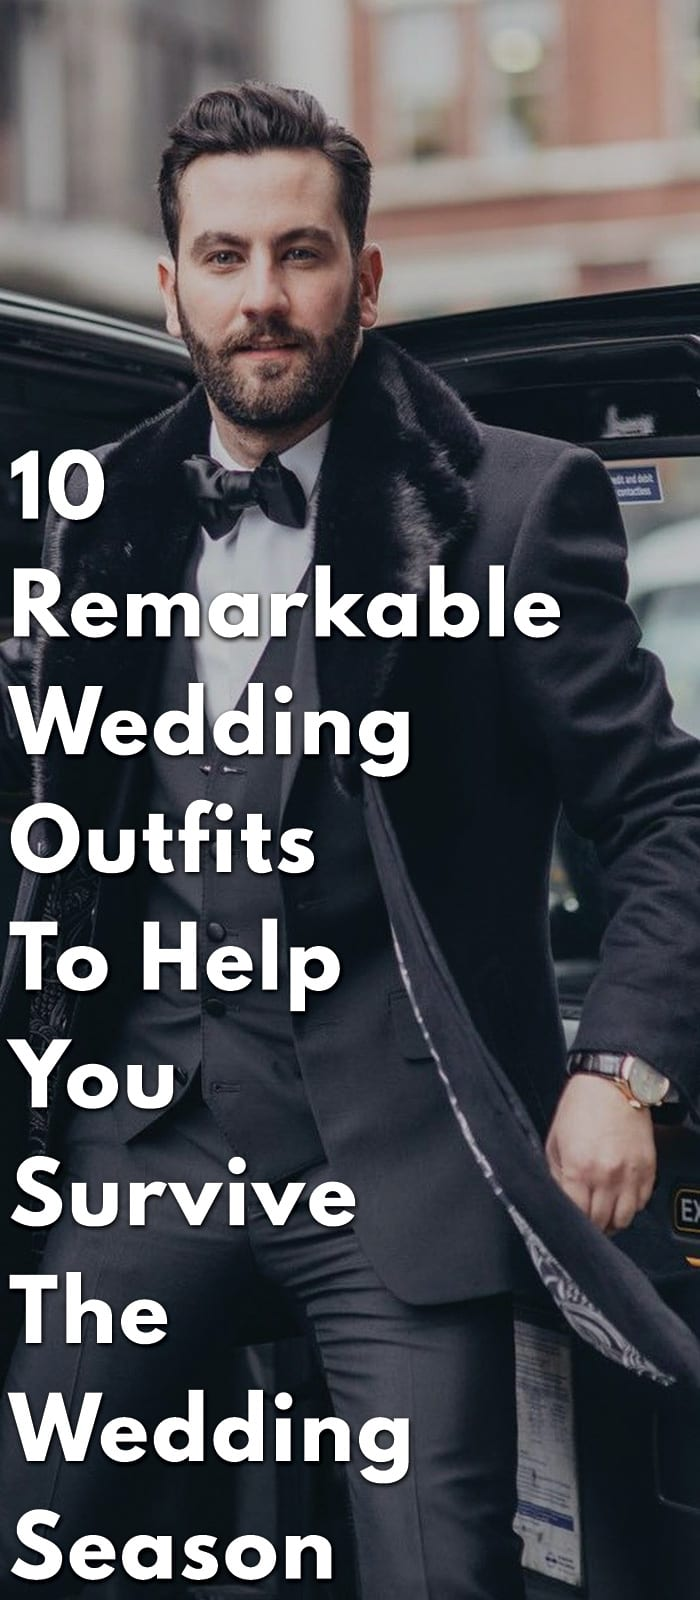 10-Remarkable-Wedding-Outfits-to-Help-You-Survive-the-Wedding-Season